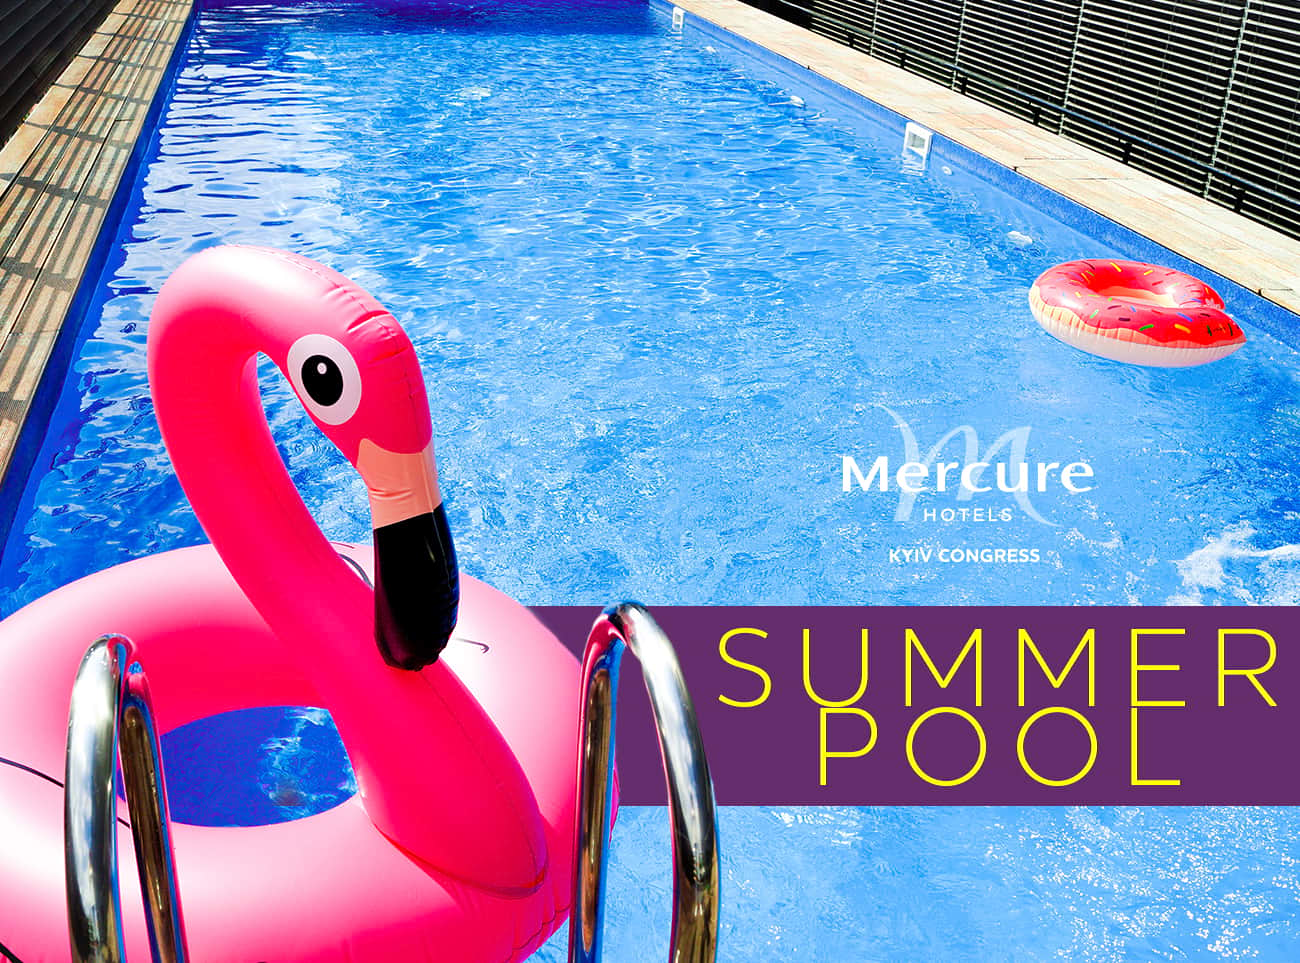 Summer pool is already available